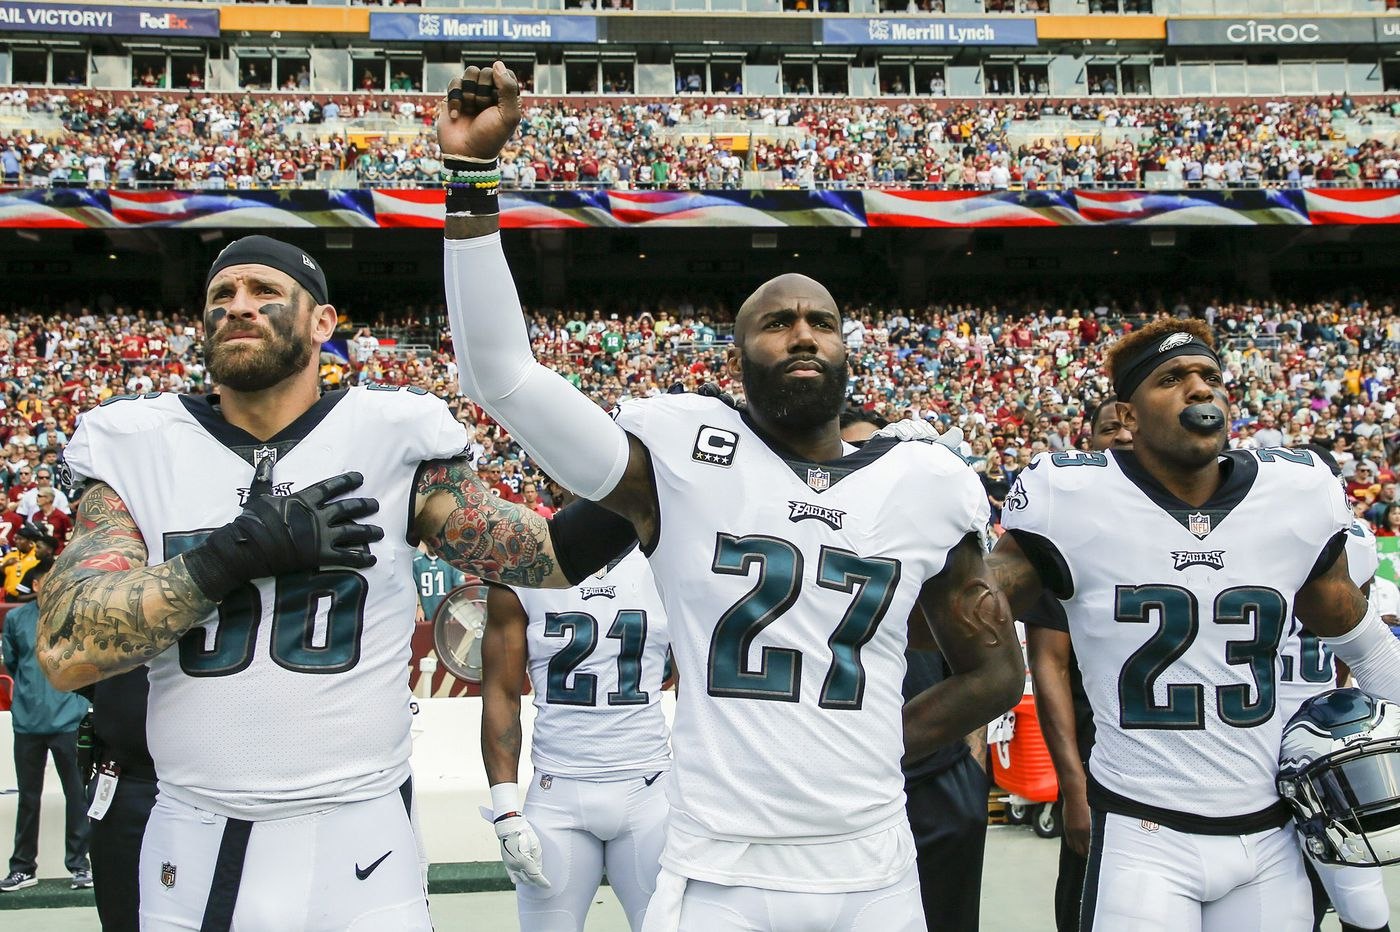 What Eagles players, local politicians and others are saying on social media about the rescinded White House invite